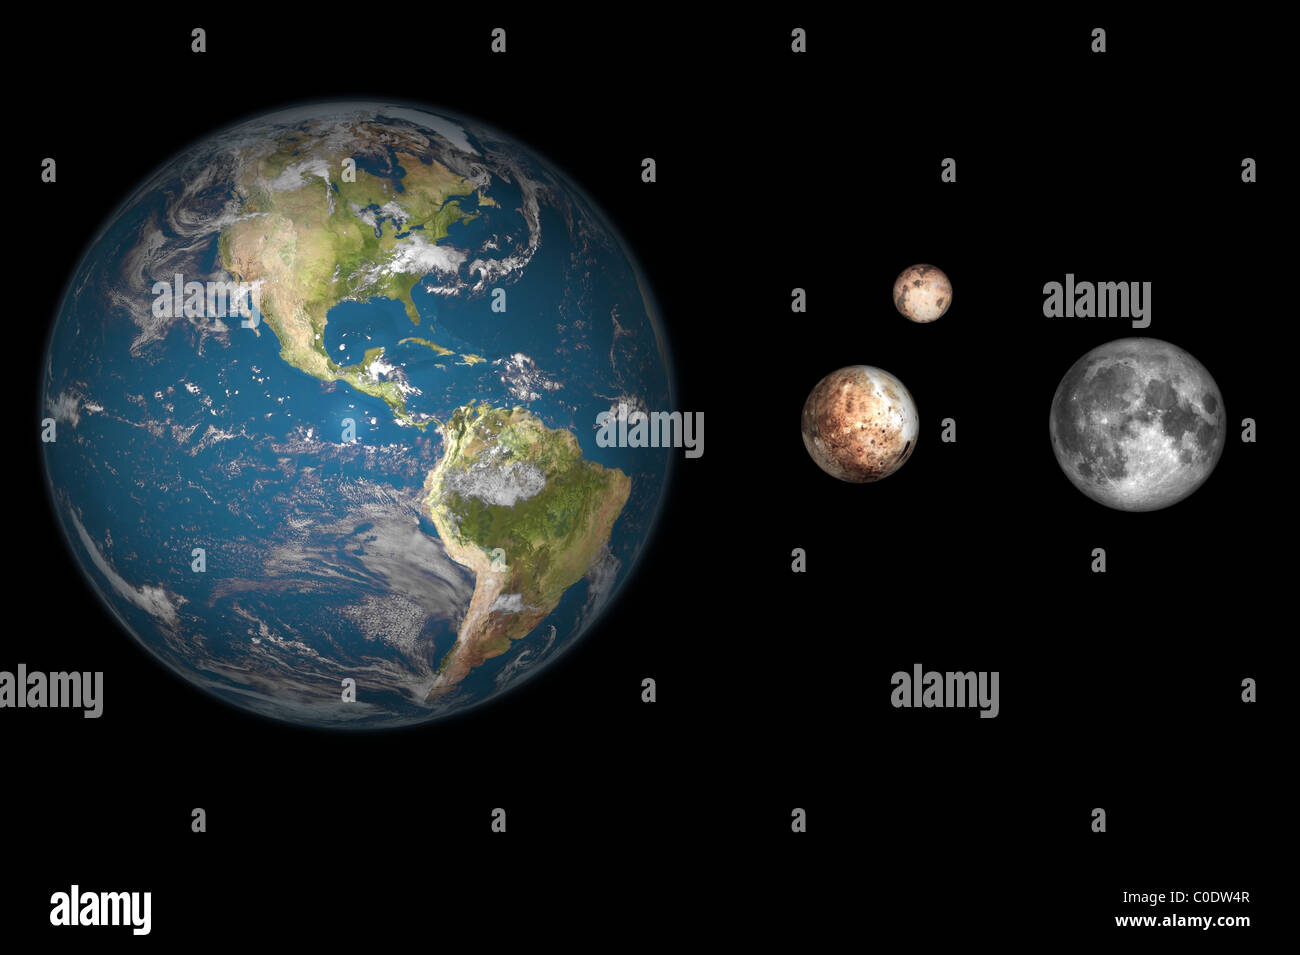 Artist's concept of the Earth, Pluto, Charon, and Earth's moon to scale. - Stock Image